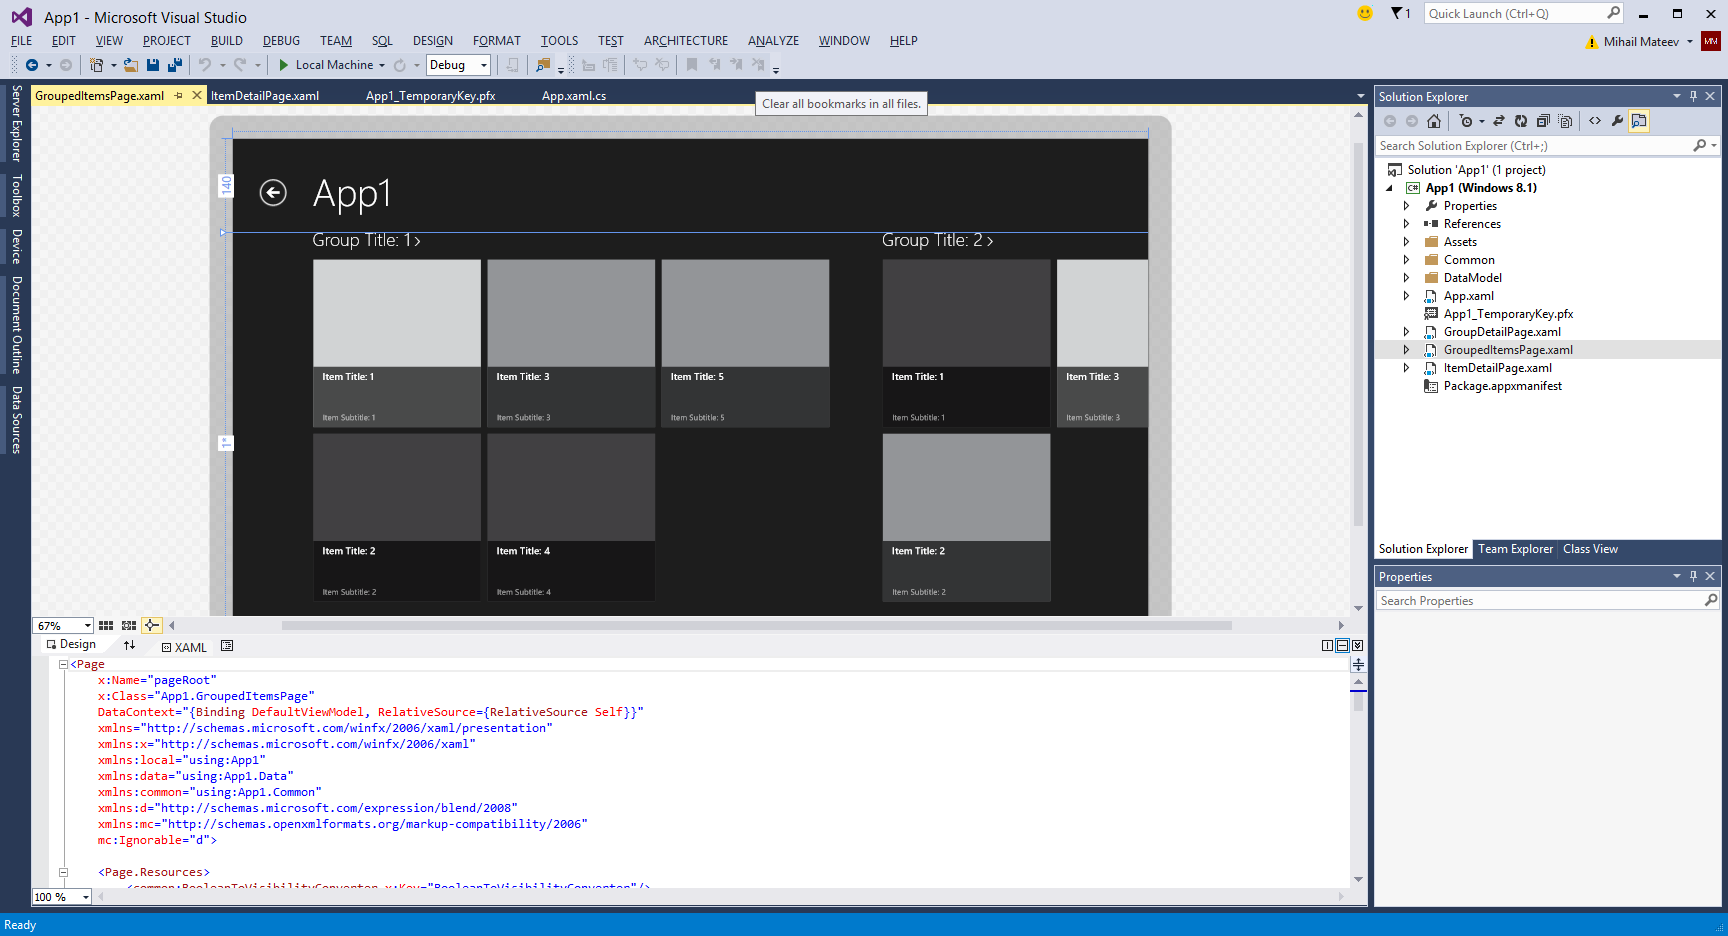 Development with Visual Studio 2013 Preview and SQL Server 2014 CTP1